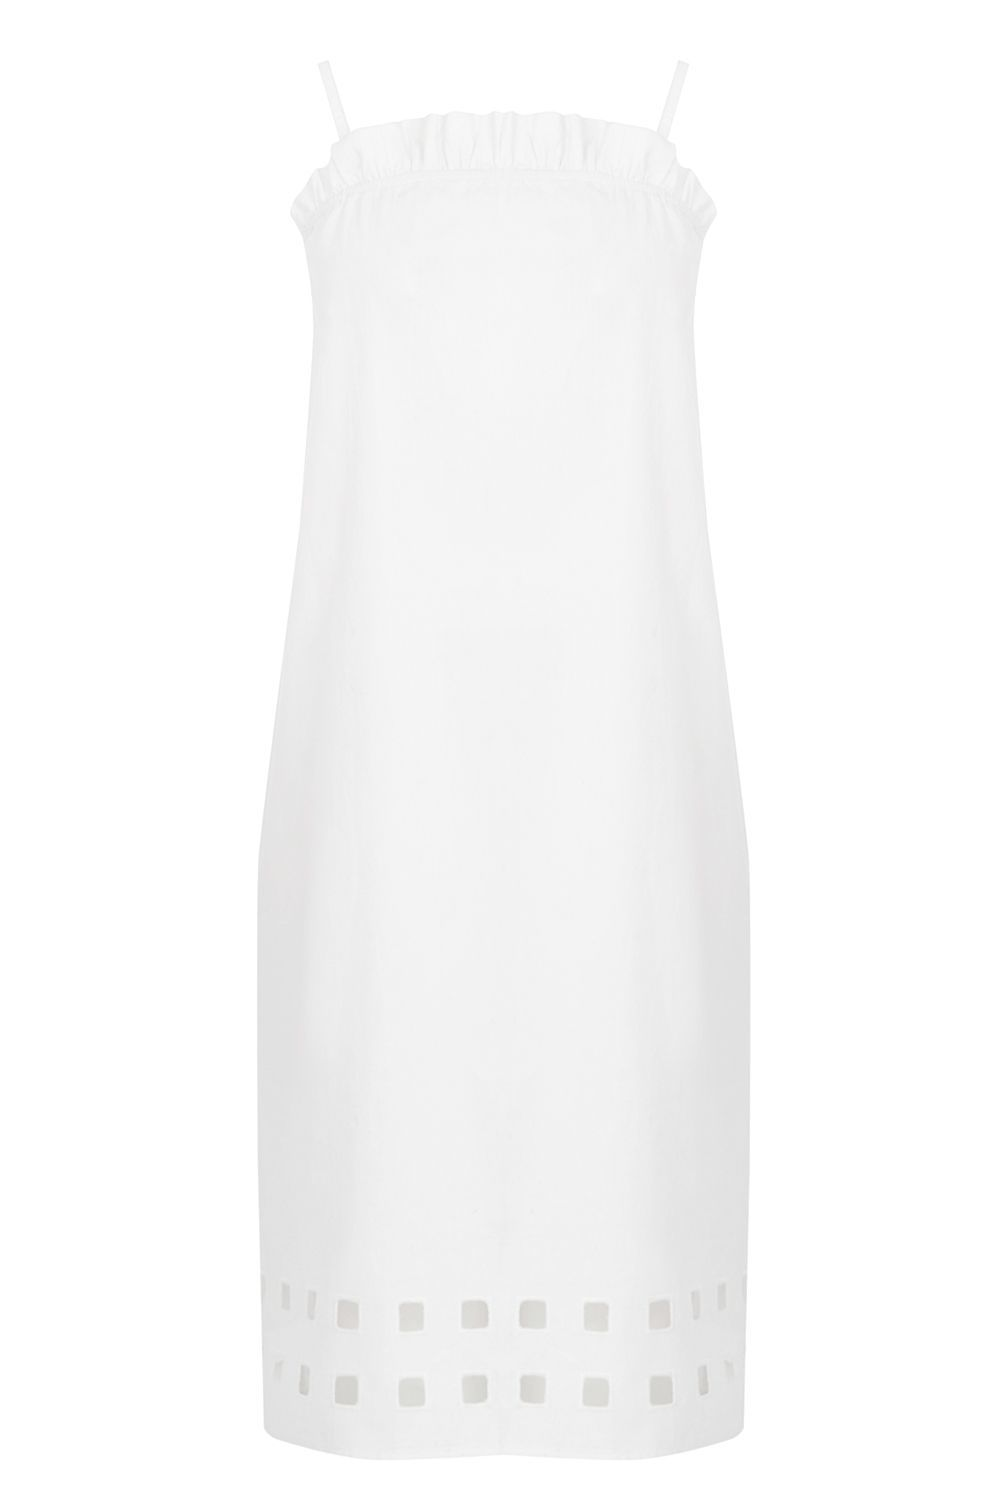 Square Cutwork Cami Dress, White - length: mid thigh; pattern: plain; sleeve style: sleeveless; predominant colour: white; occasions: casual; fit: straight cut; style: slip dress; fibres: cotton - 100%; sleeve length: sleeveless; texture group: cotton feel fabrics; neckline: medium square neck; pattern type: fabric; season: s/s 2016; wardrobe: basic